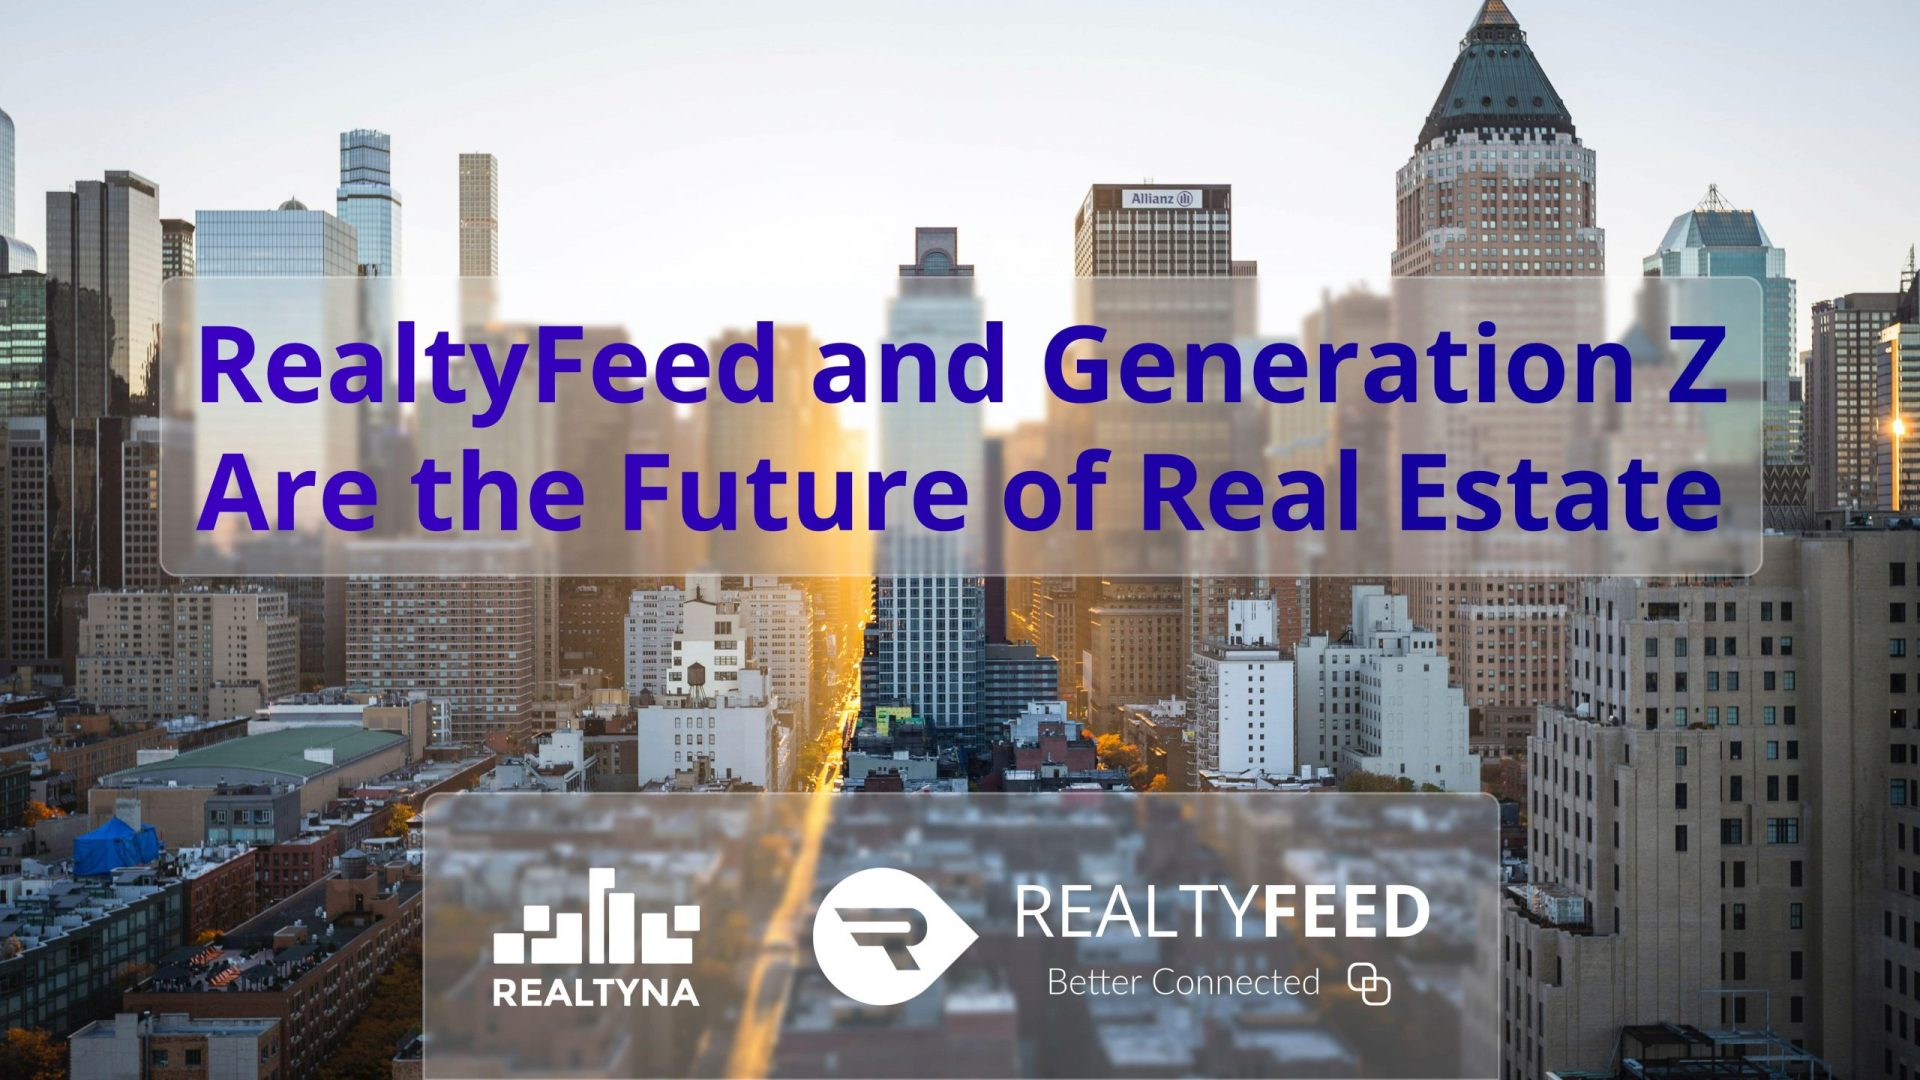 RealtyFeed and Generation Z Are the Future of Real Estate